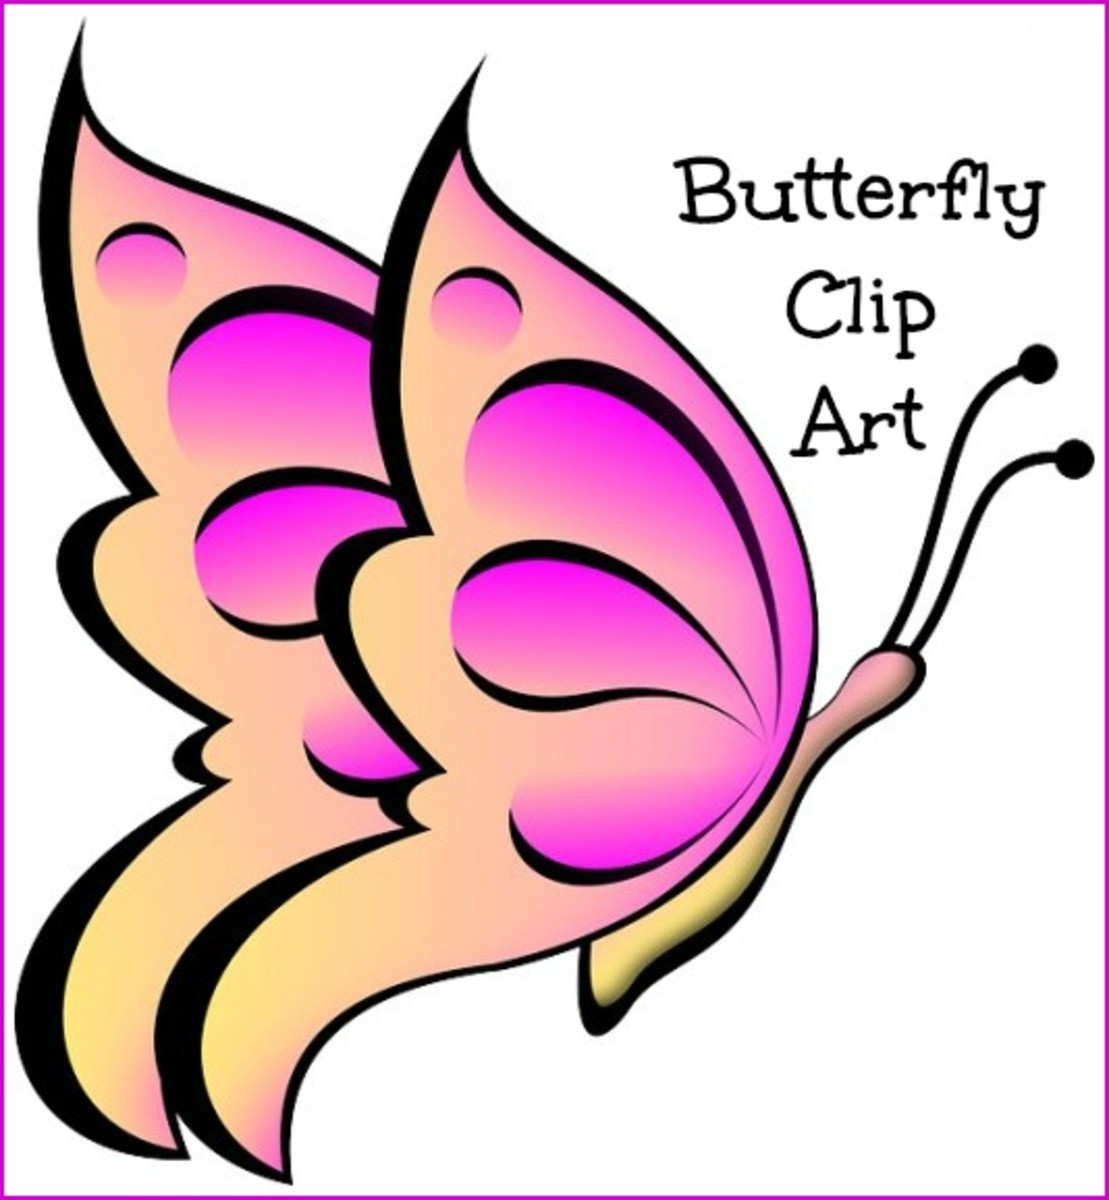 BUTTERFLY CLIP ART | 170 Best Free Clip Art & Drawings of Butterflies